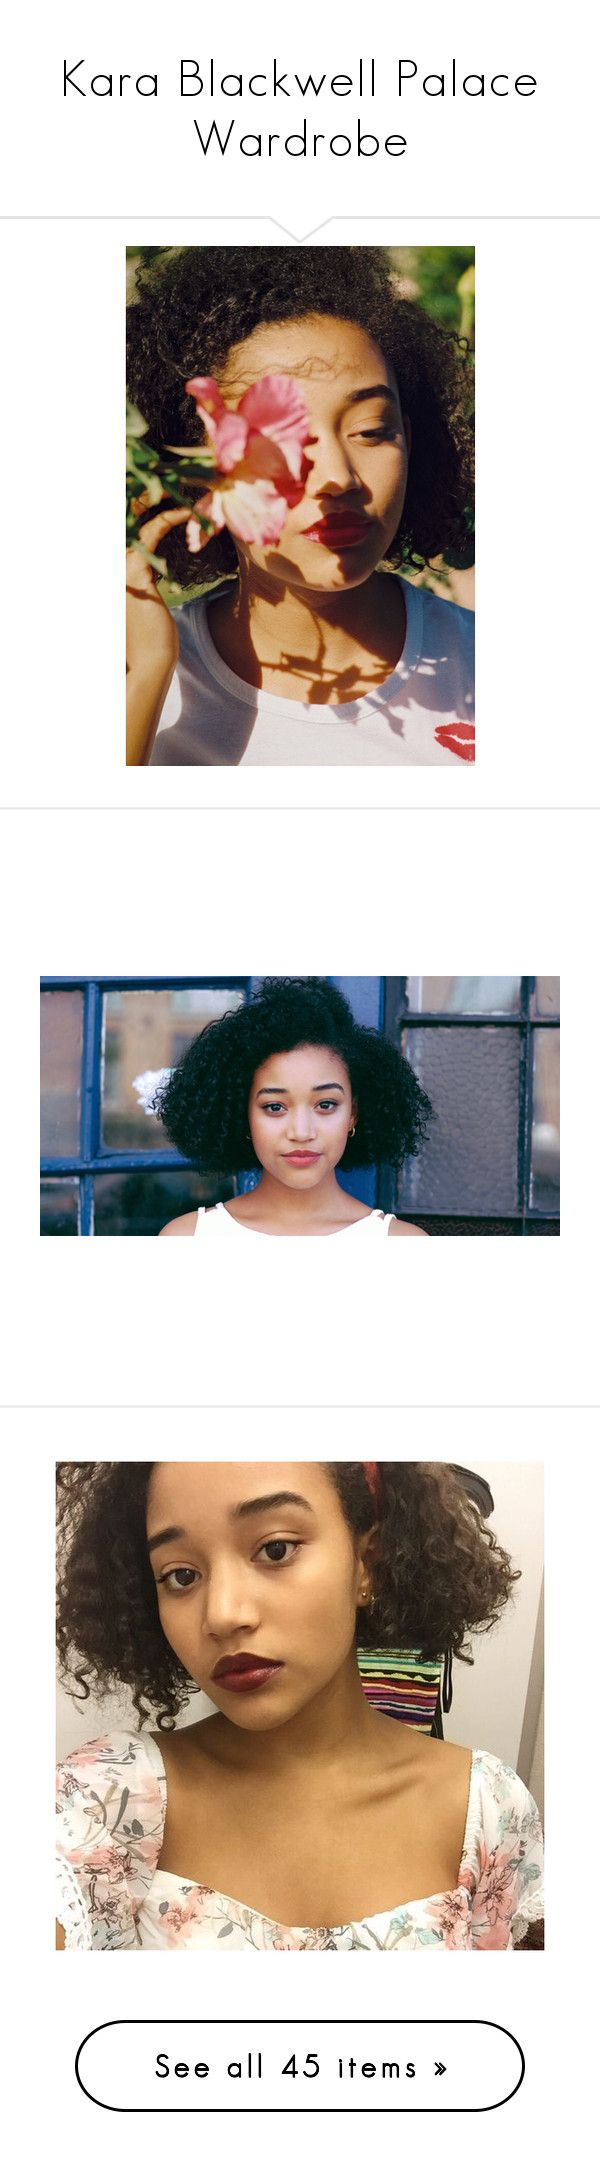 """""""Kara Blackwell Palace Wardrobe"""" by hz24601 ❤ liked on Polyvore featuring amandla stenberg, pictures, backgrounds, models, photos, dresses, vestidos, short dress, yellow print and nautical dresses"""